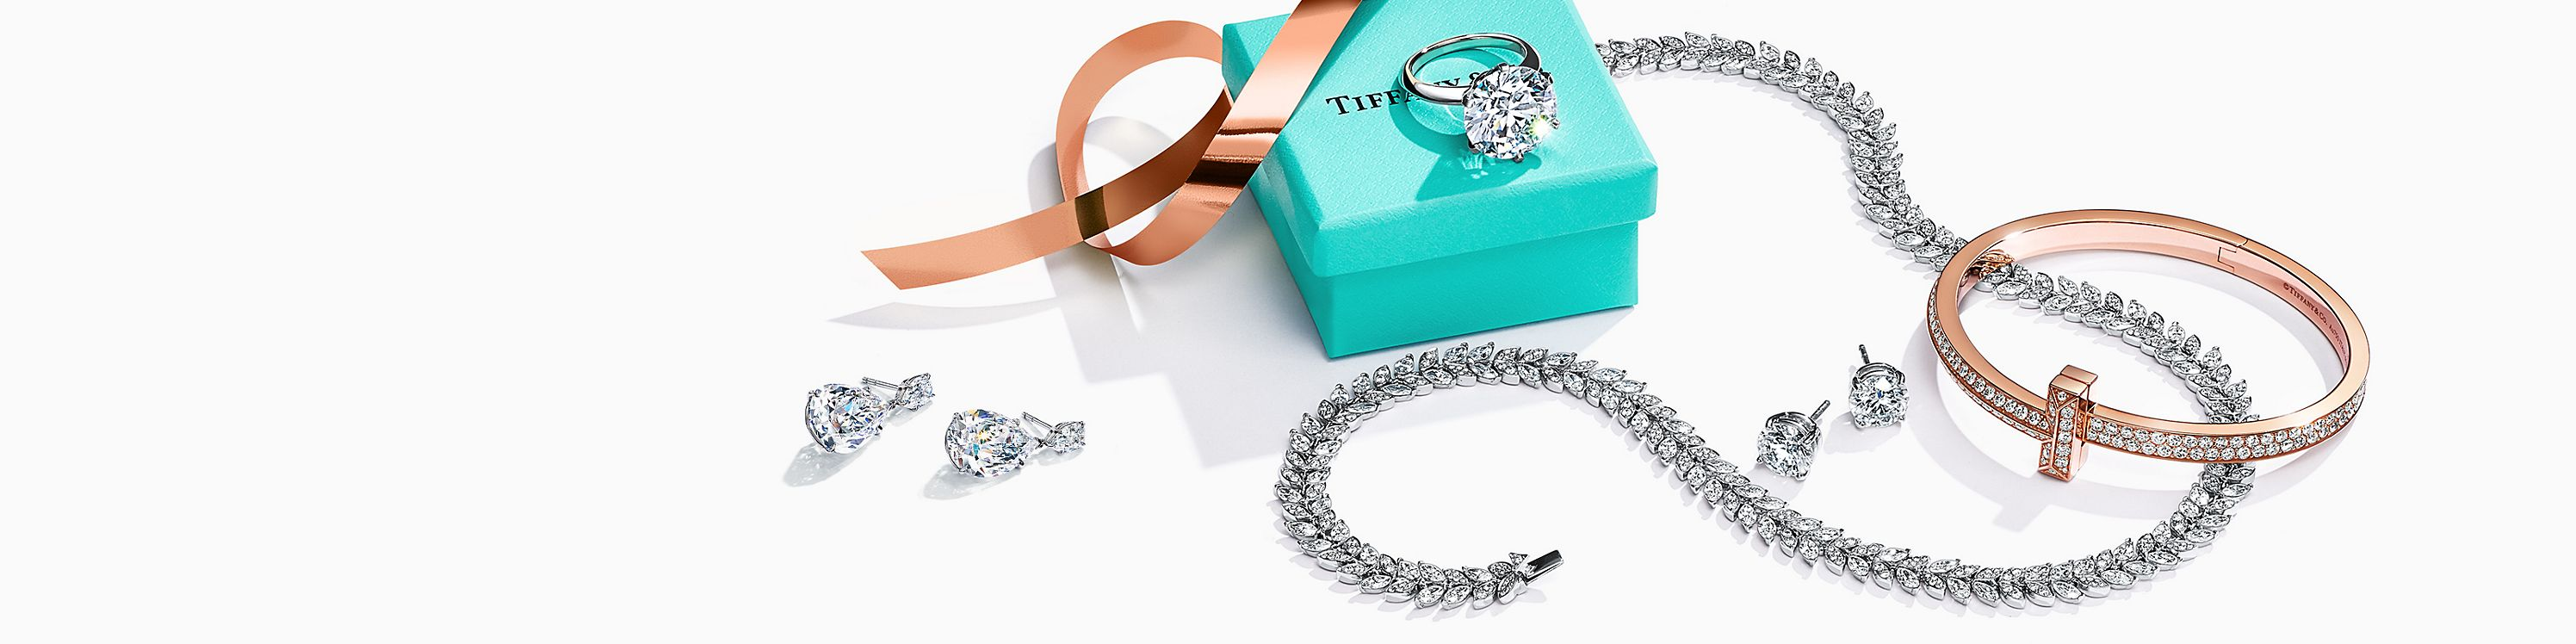 Tiffany & Co. Gifts for Her